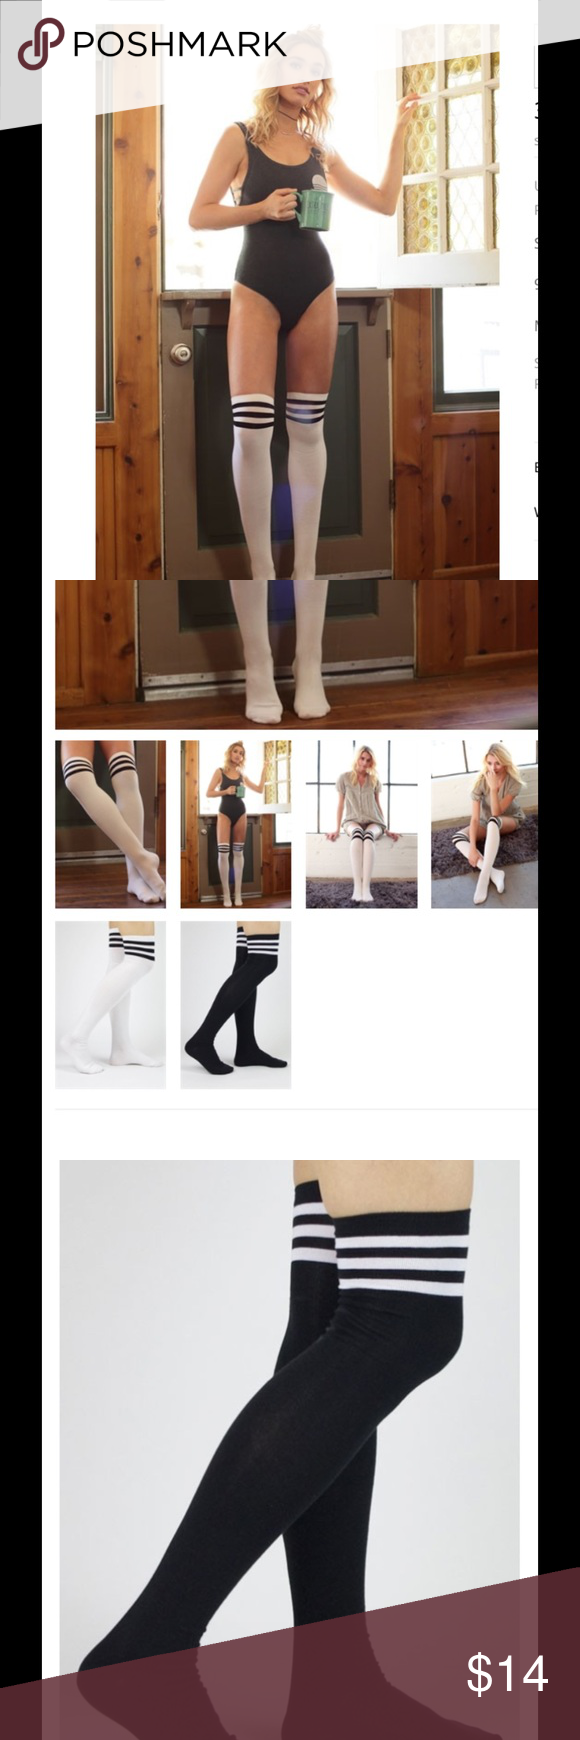 SOON! Cotton spandex thigh highs!  NEW In package stripes white with black stripes or black with white stripes cotton /spandex two for $25 or $14 each mix/match! Accessories Hosiery & Socks